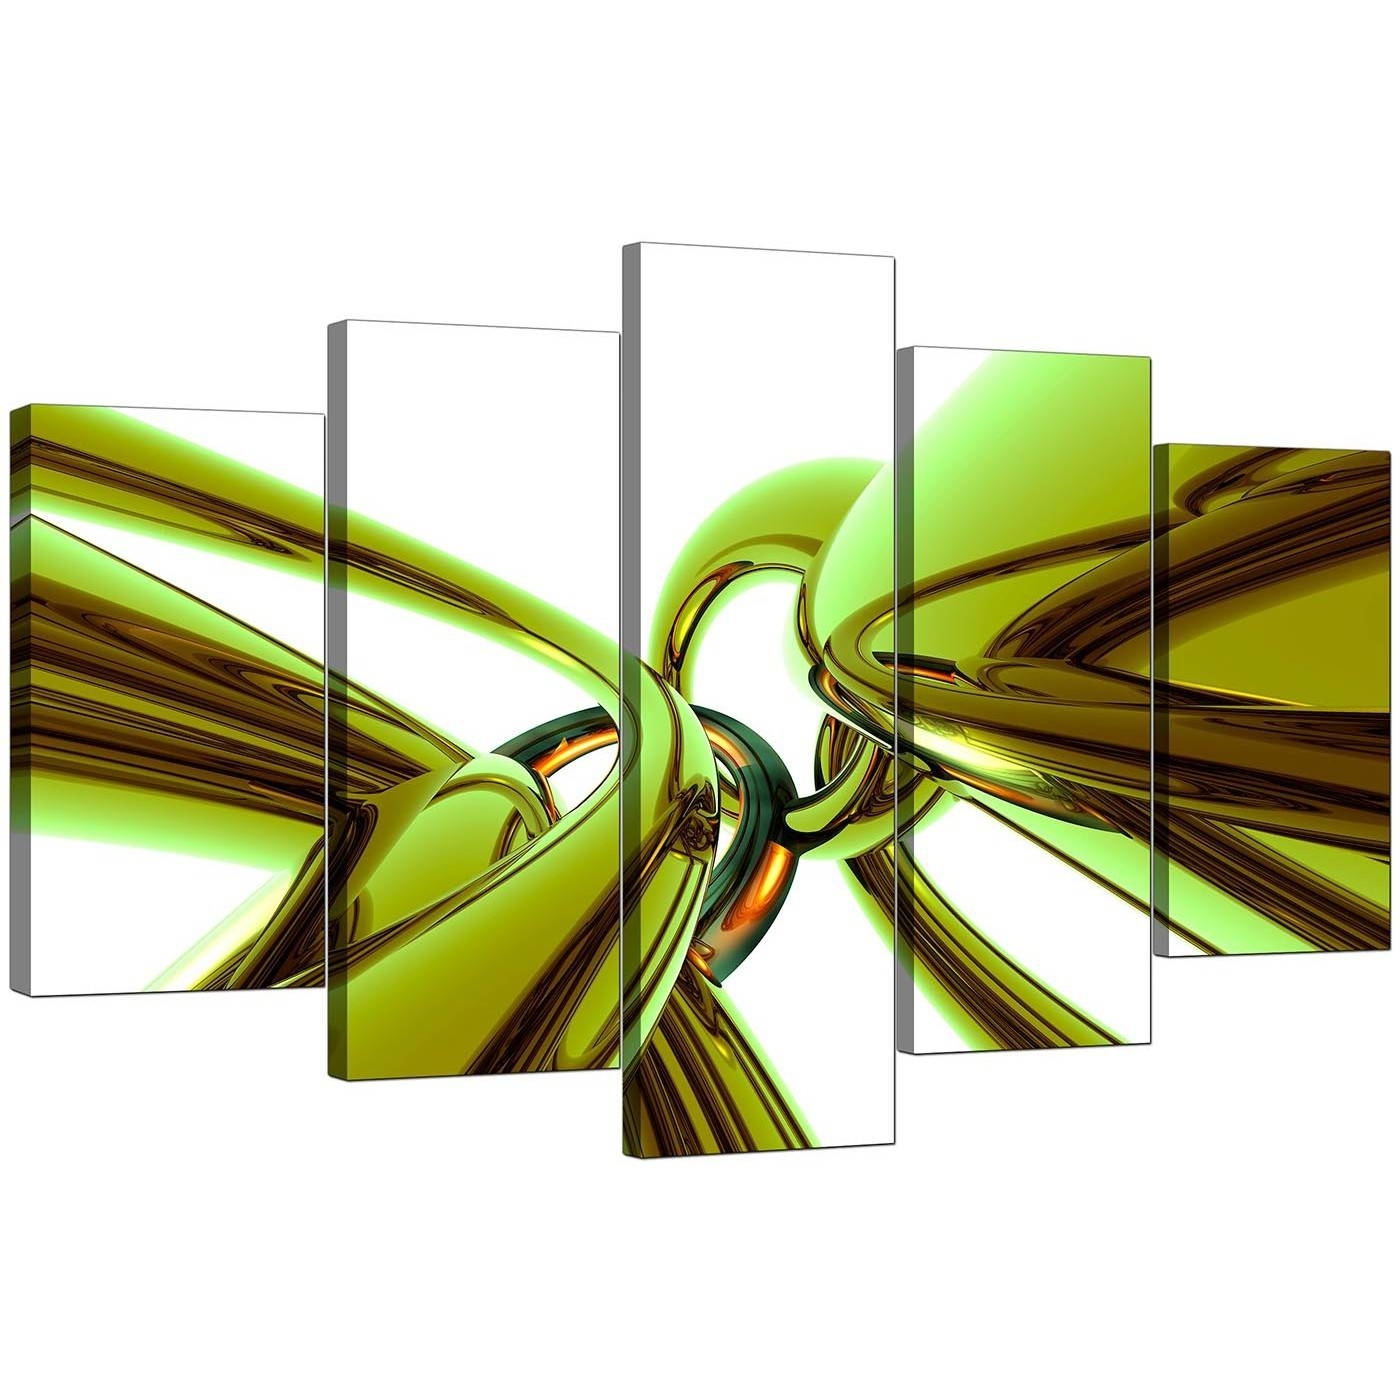 Extra Large Green Abstract Canvas Prints Uk – 5 Piece Throughout 2018 Large Green Wall Art (View 9 of 20)